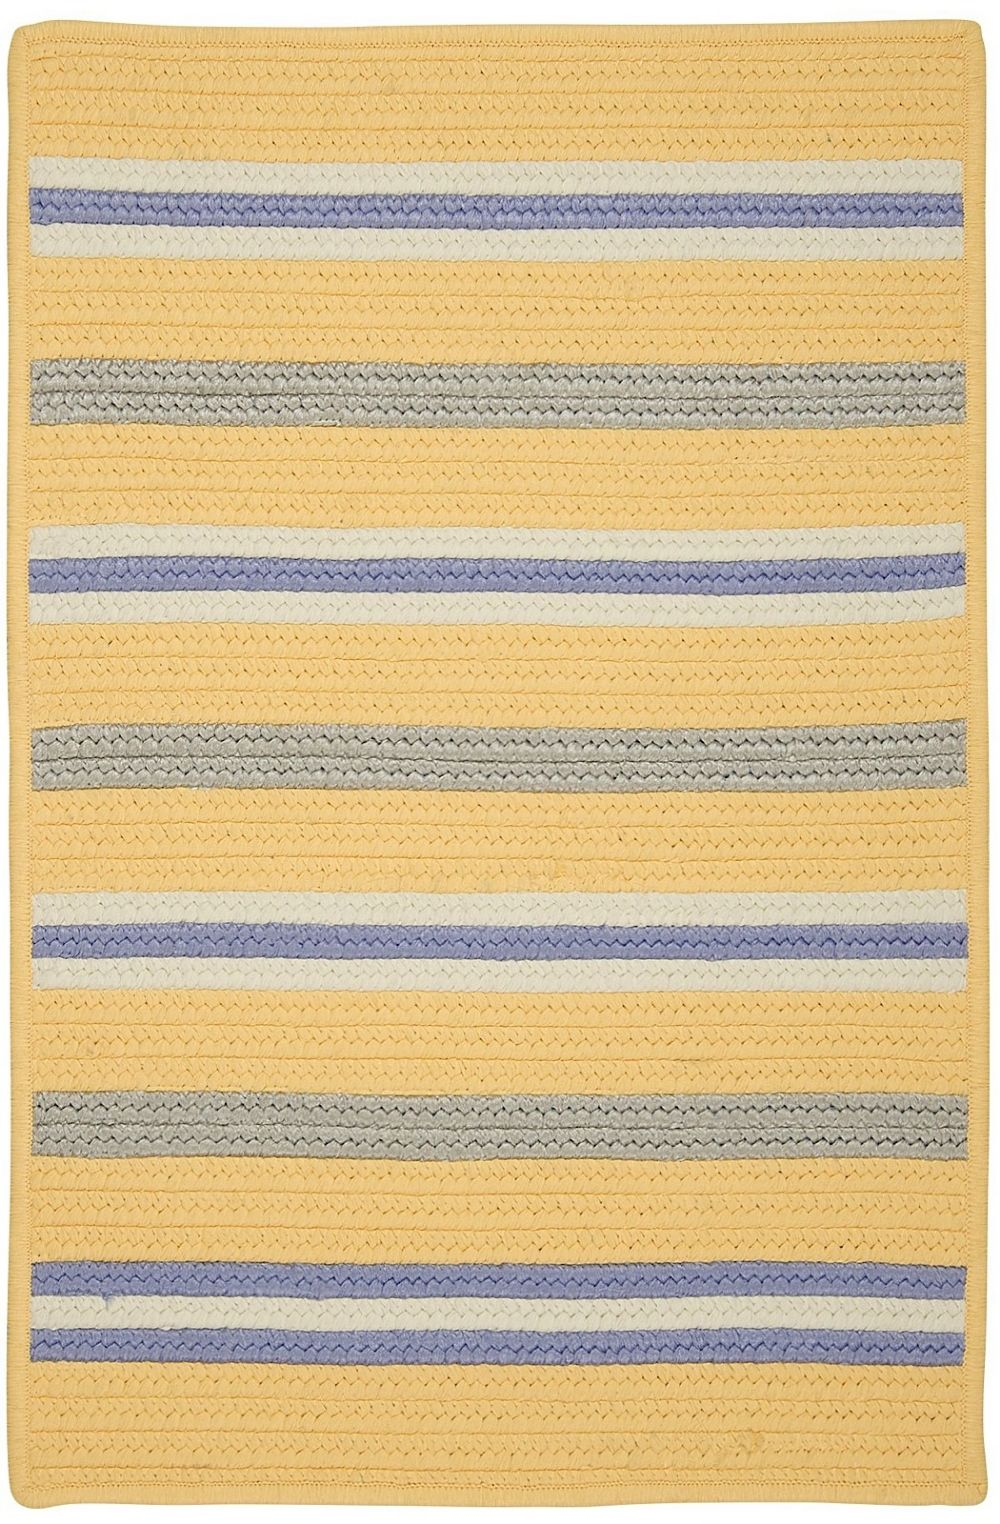 colonial mills painter stripe braided area rug collection